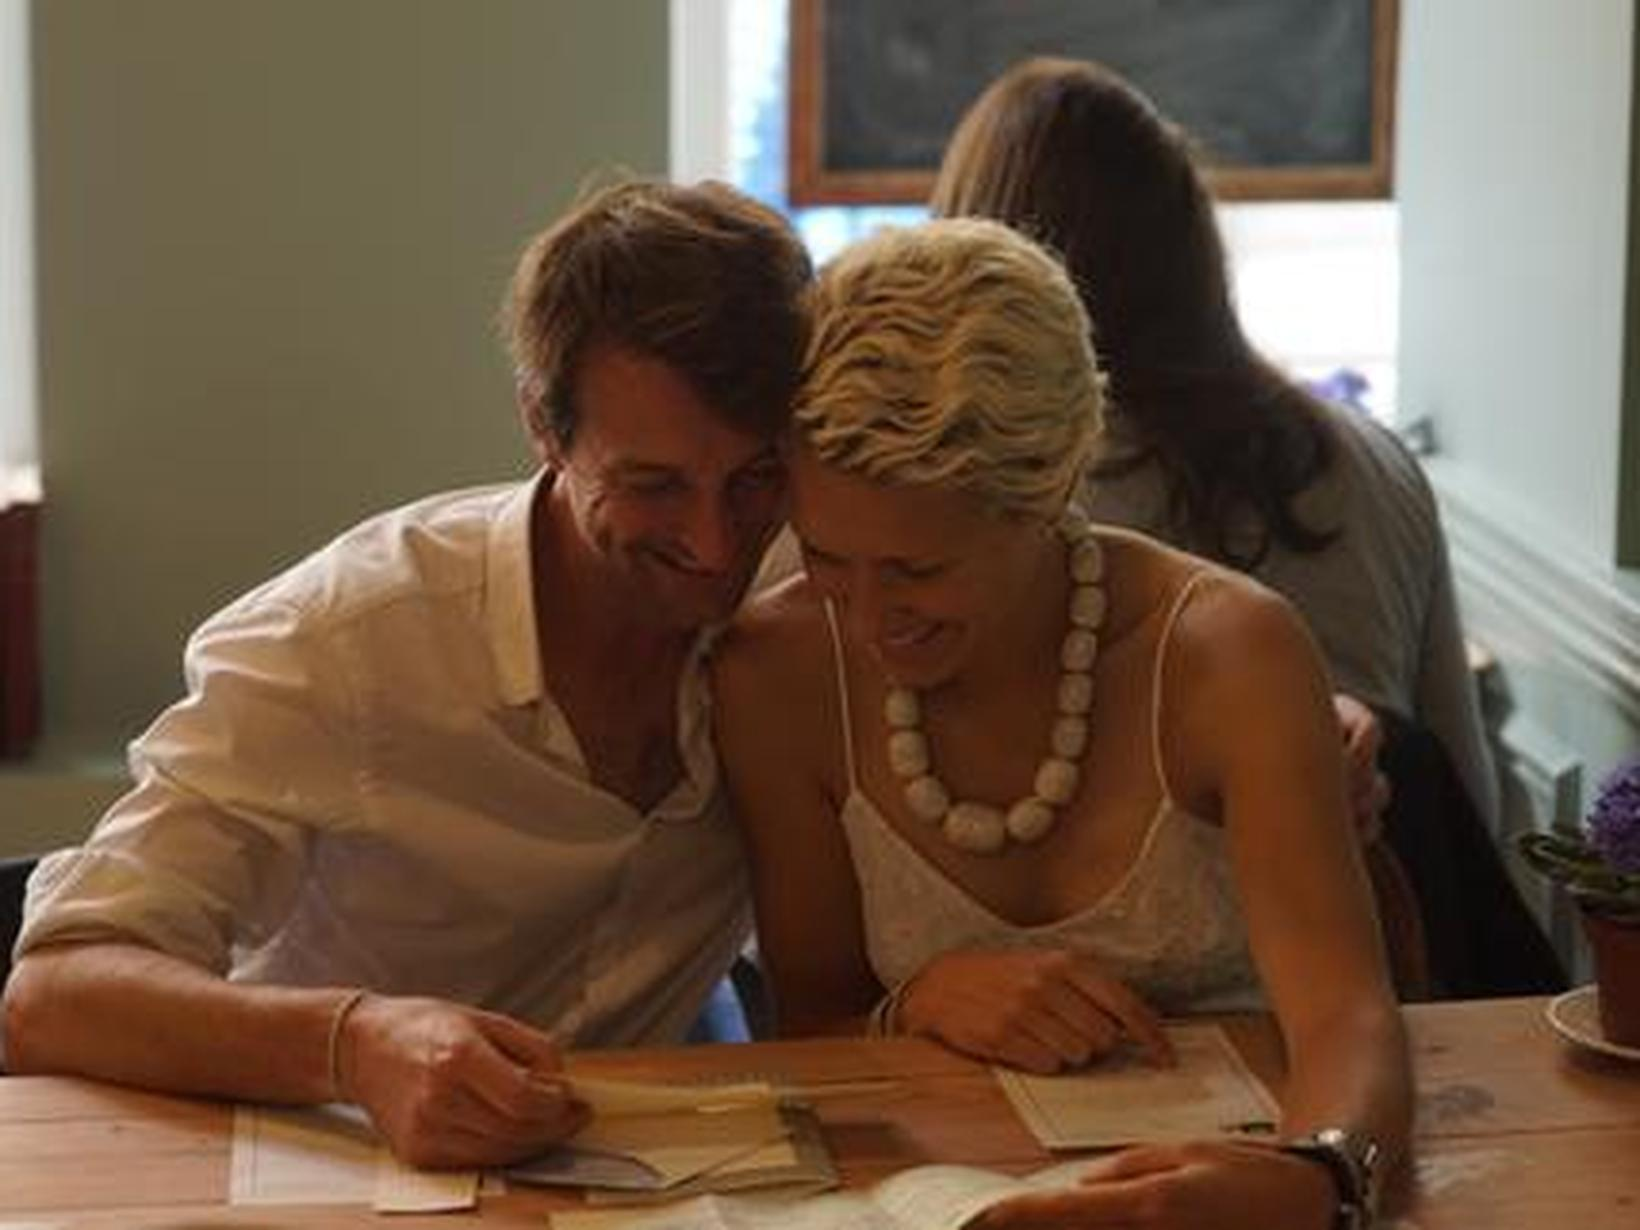 Sonia & Wouter from Covent Garden, United Kingdom